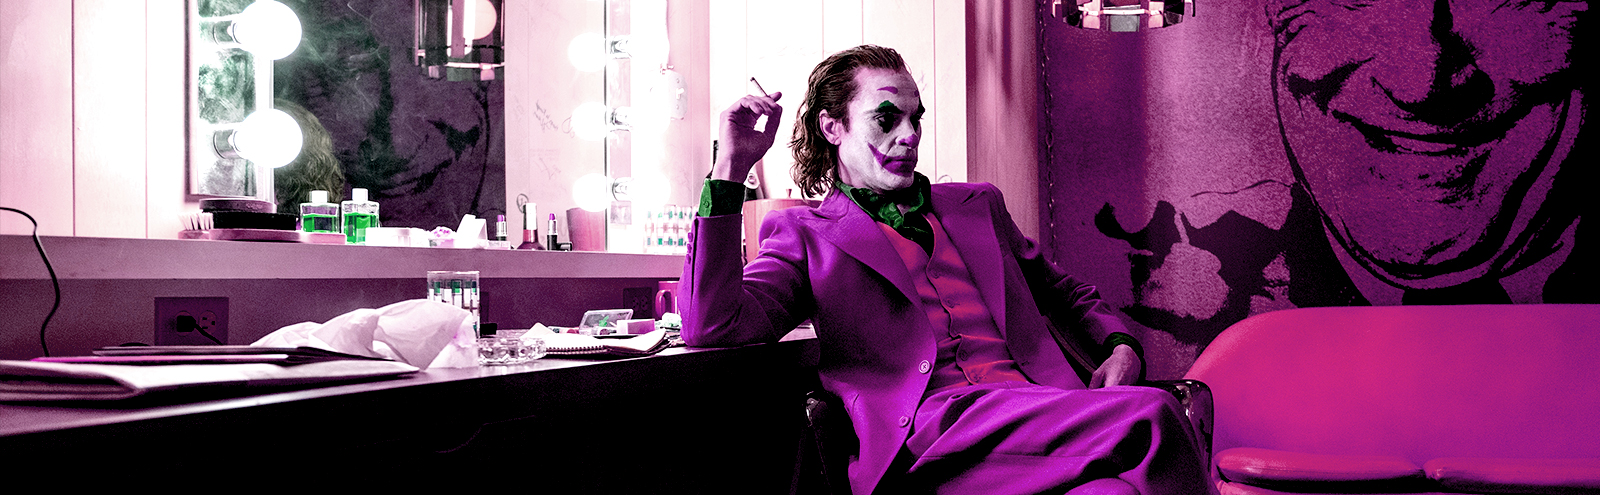 Joker Review The Only Thing Wrong Is That It S All About